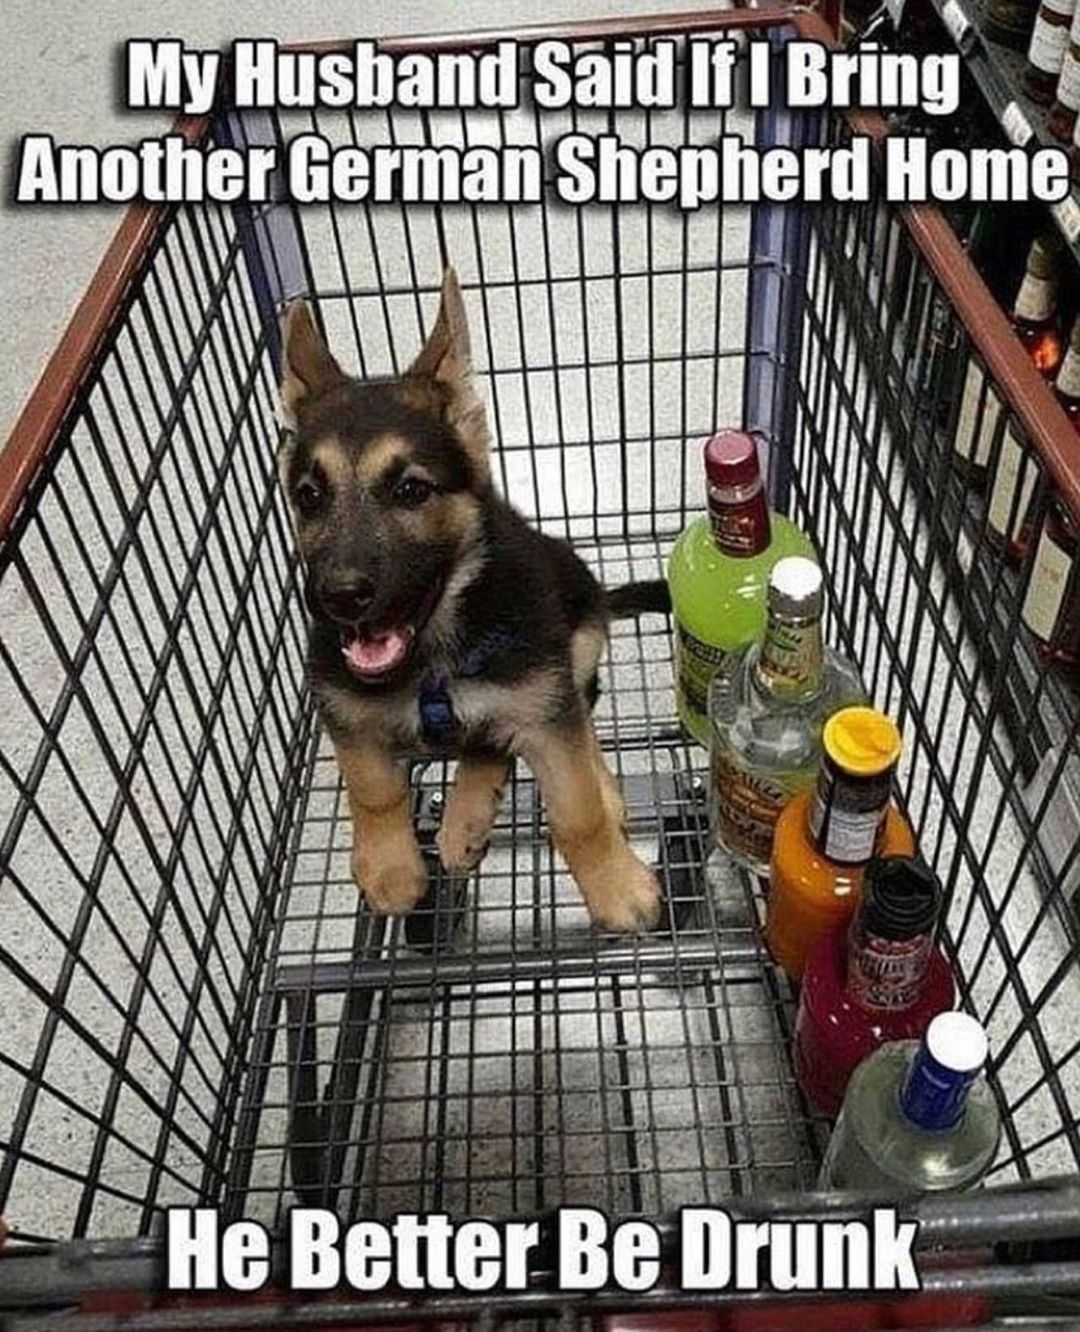 My husband said, if I bring another German Shepard home, he better be drunk